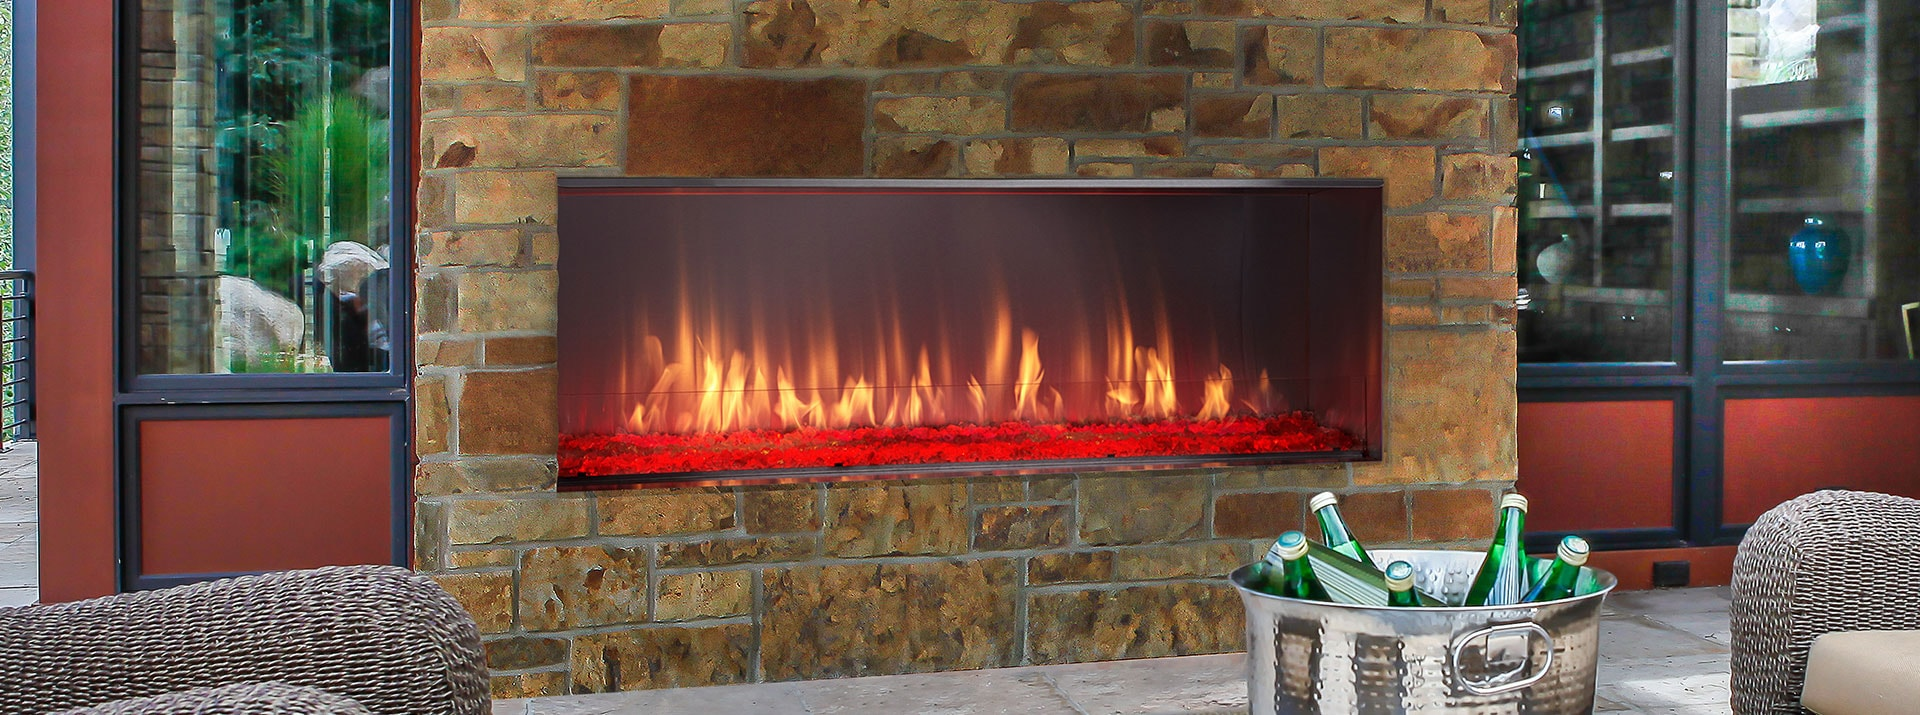 artisan fireplace idea fire gas gallery why wbtlogs vent free find your monessen product hearth design